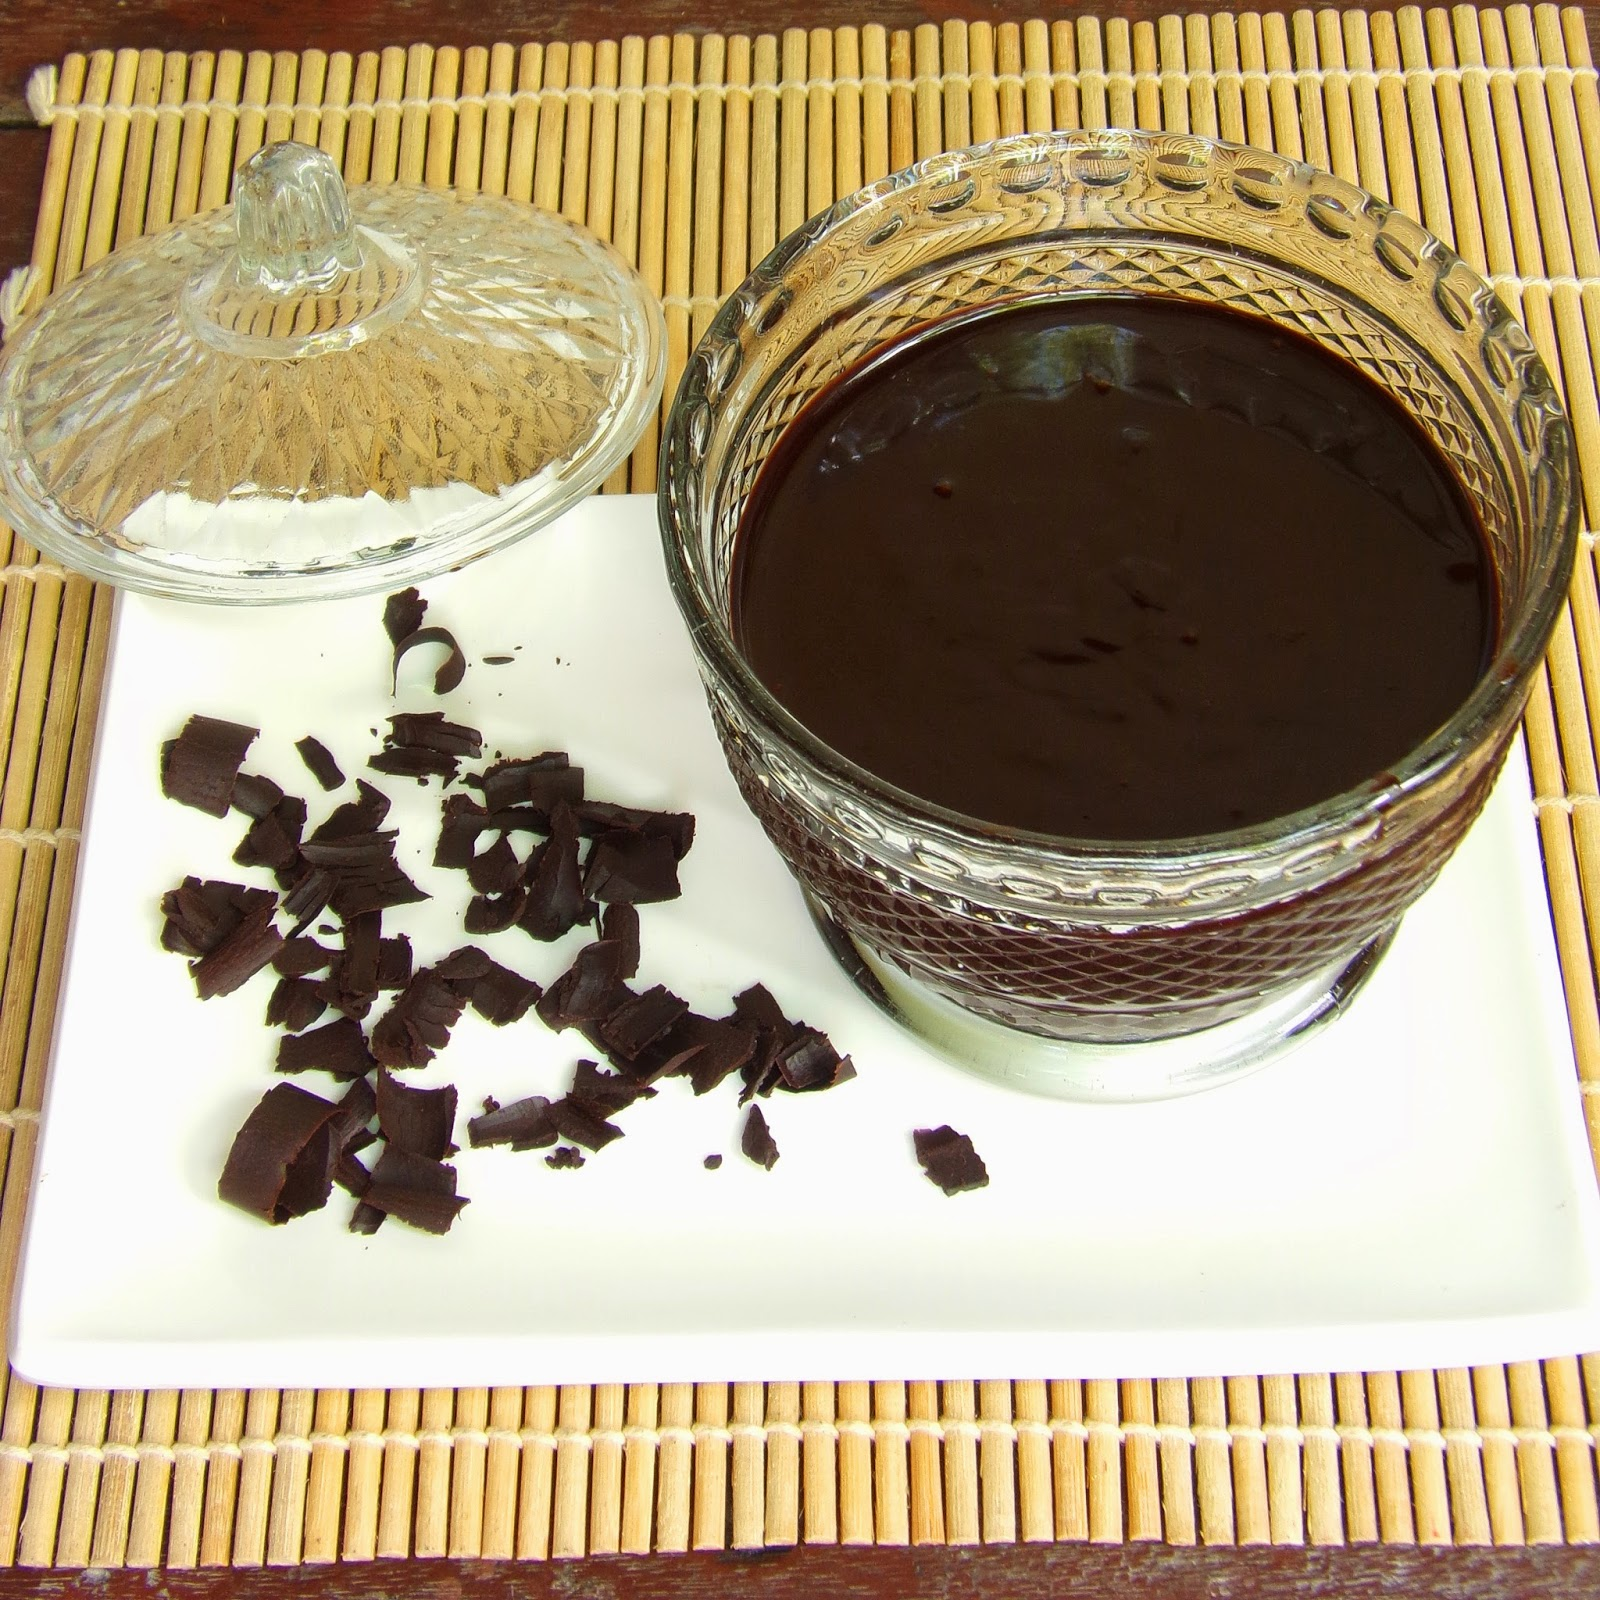 chocolate syrup recipe, how to make chocolate syrup, homemade chocolate syrup, chocolate fondue